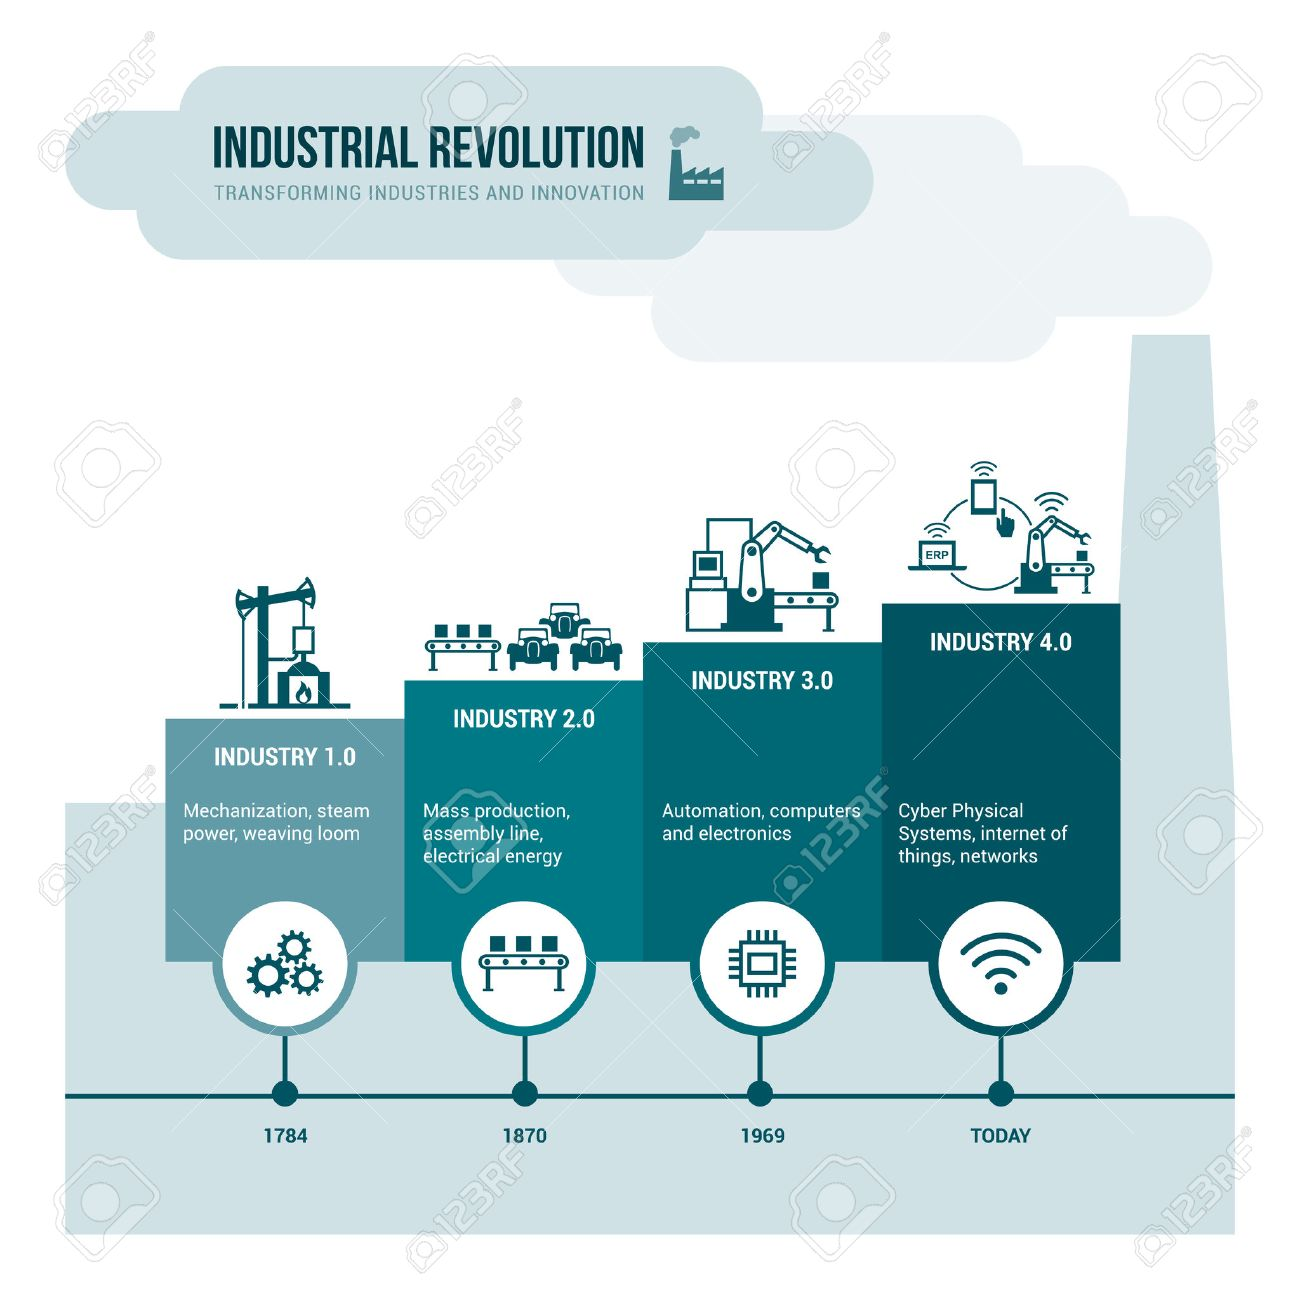 Industrial revolution stages from steam power to cyber physical systems, automation and internet of things - 67108937